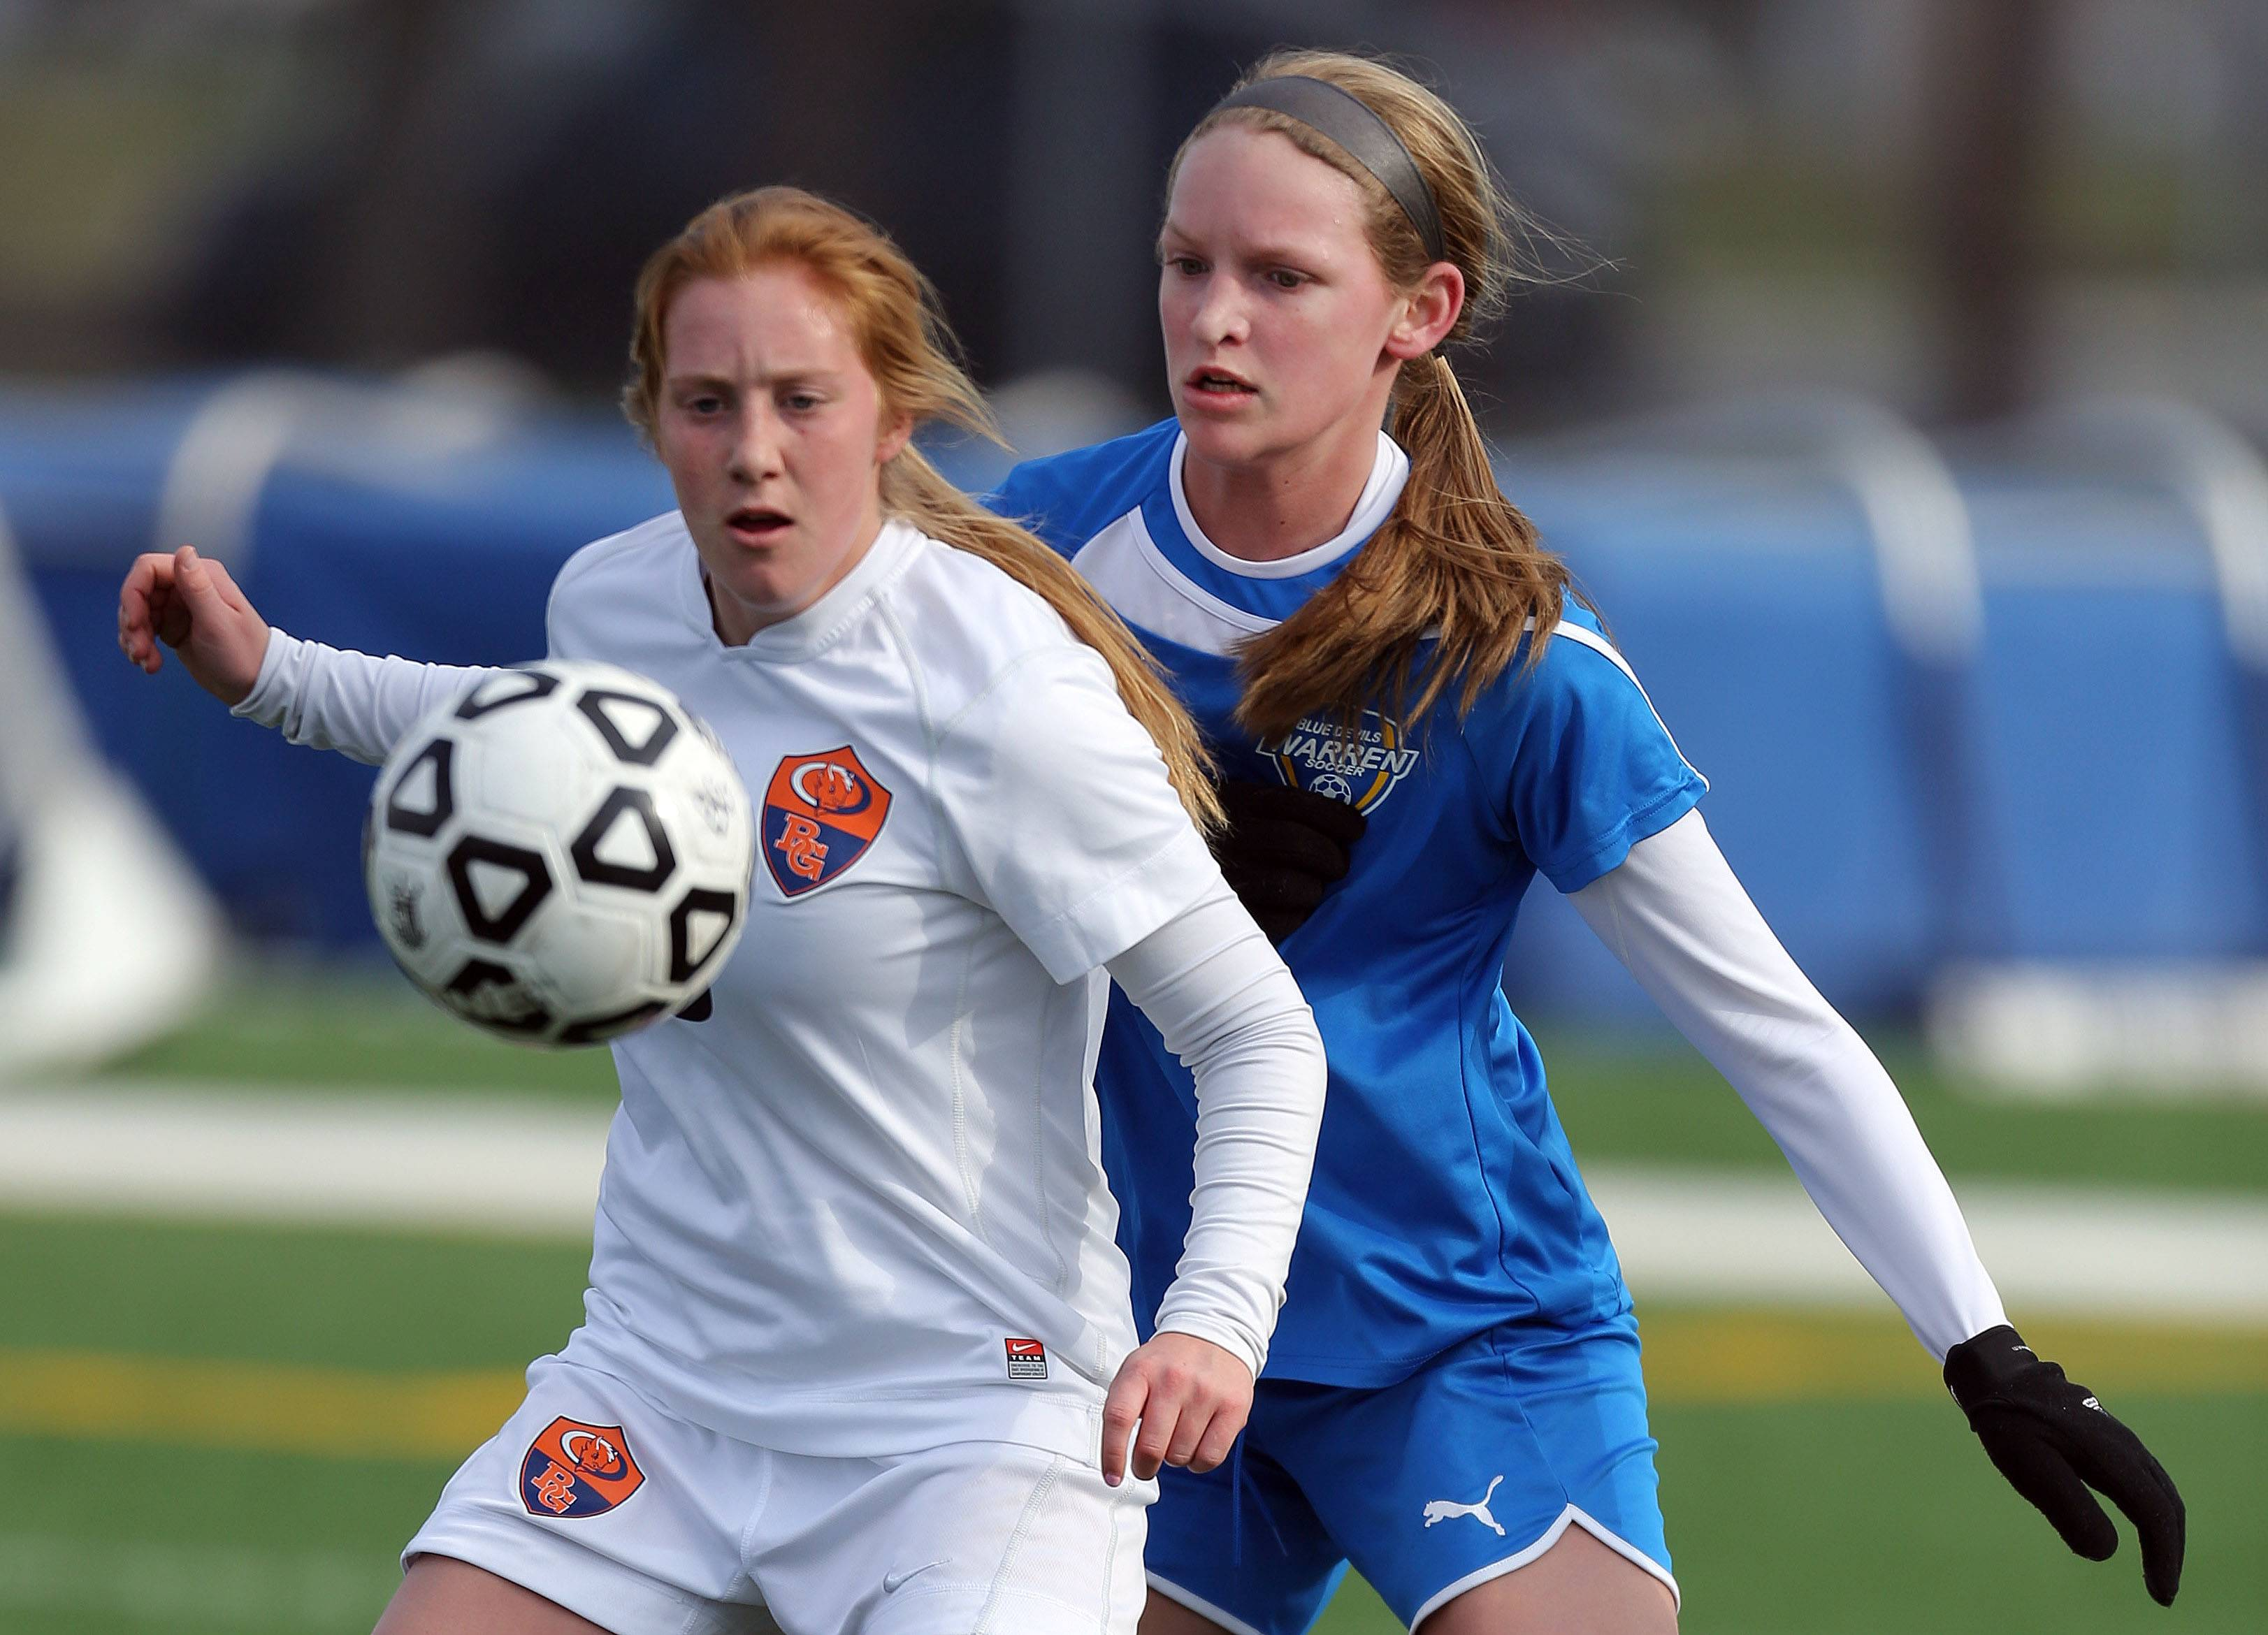 Buffalo Grove's Kelli Zickert, left and Warren's Natalee Slater battle for possession Tuesday at Buffalo Grove.